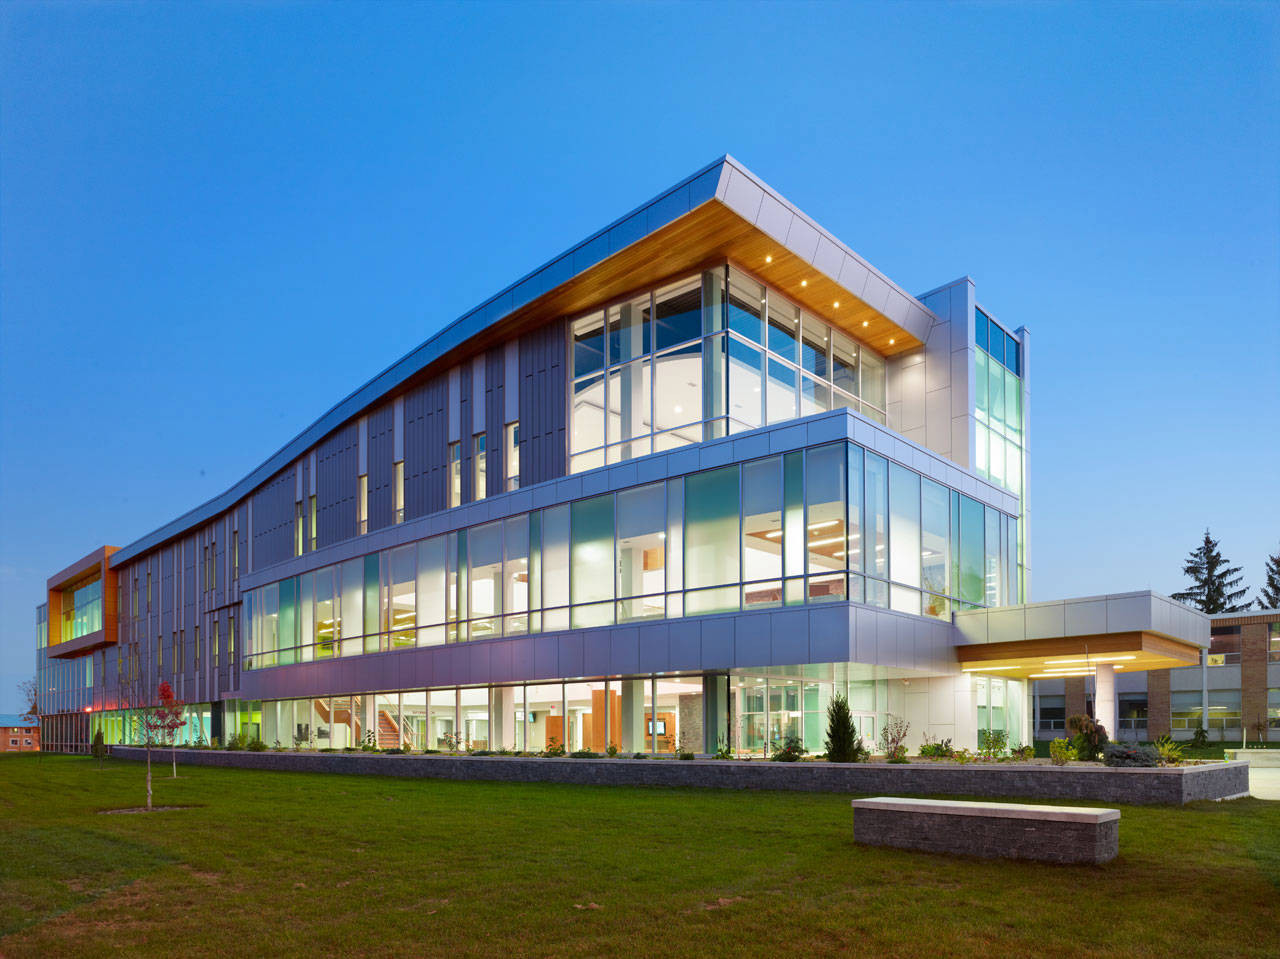 Sault College Academic Building / Architects Tillmann Ruth Robinson, © Shai Gil